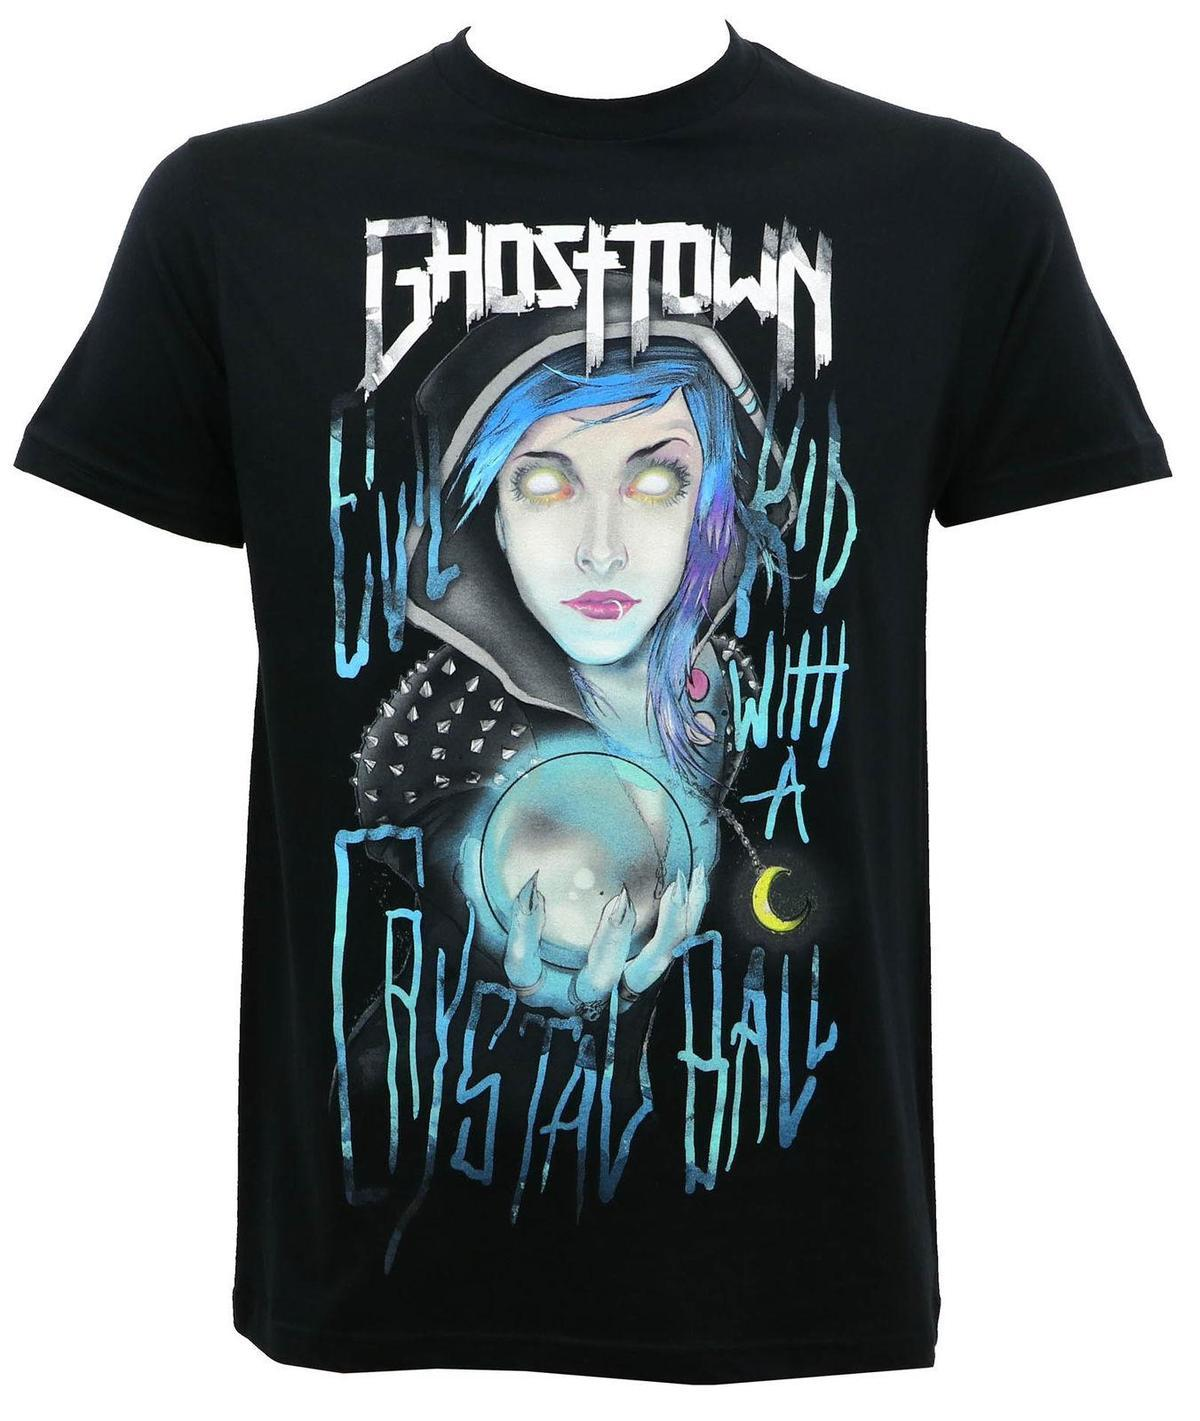 2225f3e3529 GHOST TOWN Band Crystal Ball T-Shirt S M L XL 2XL NEW T-Shirt New ...